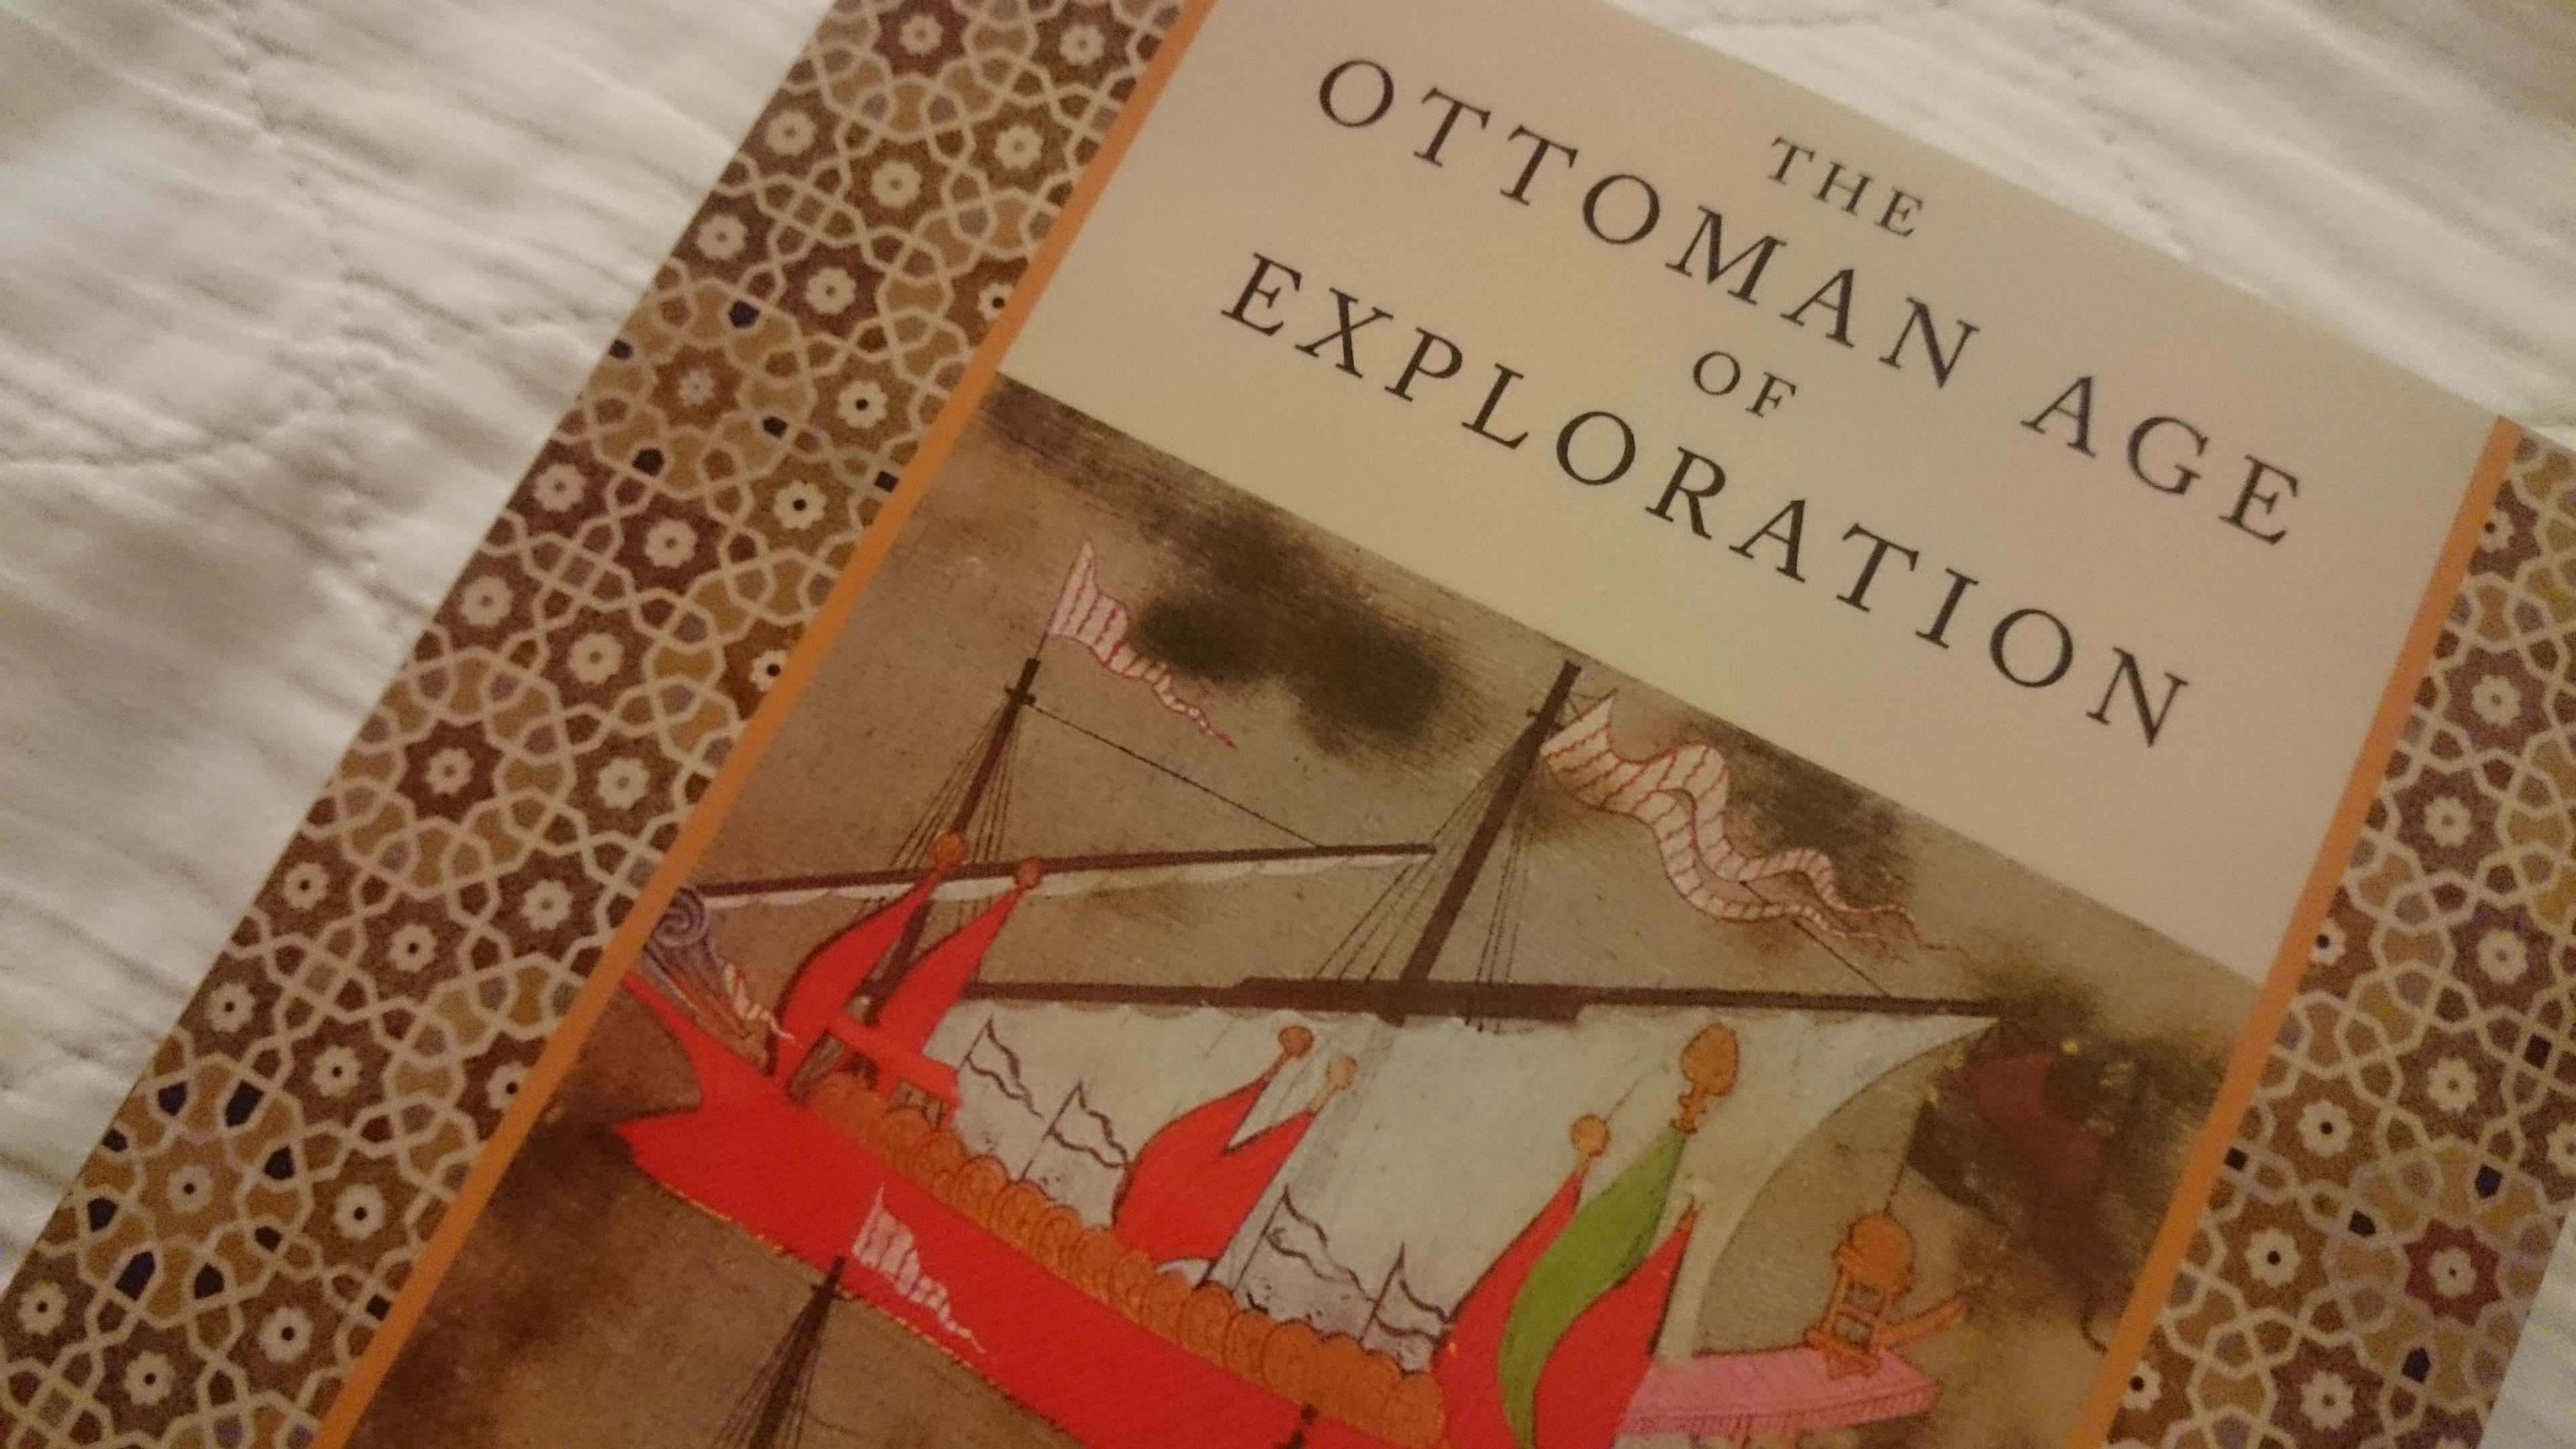 Ottoman Age of Exploration